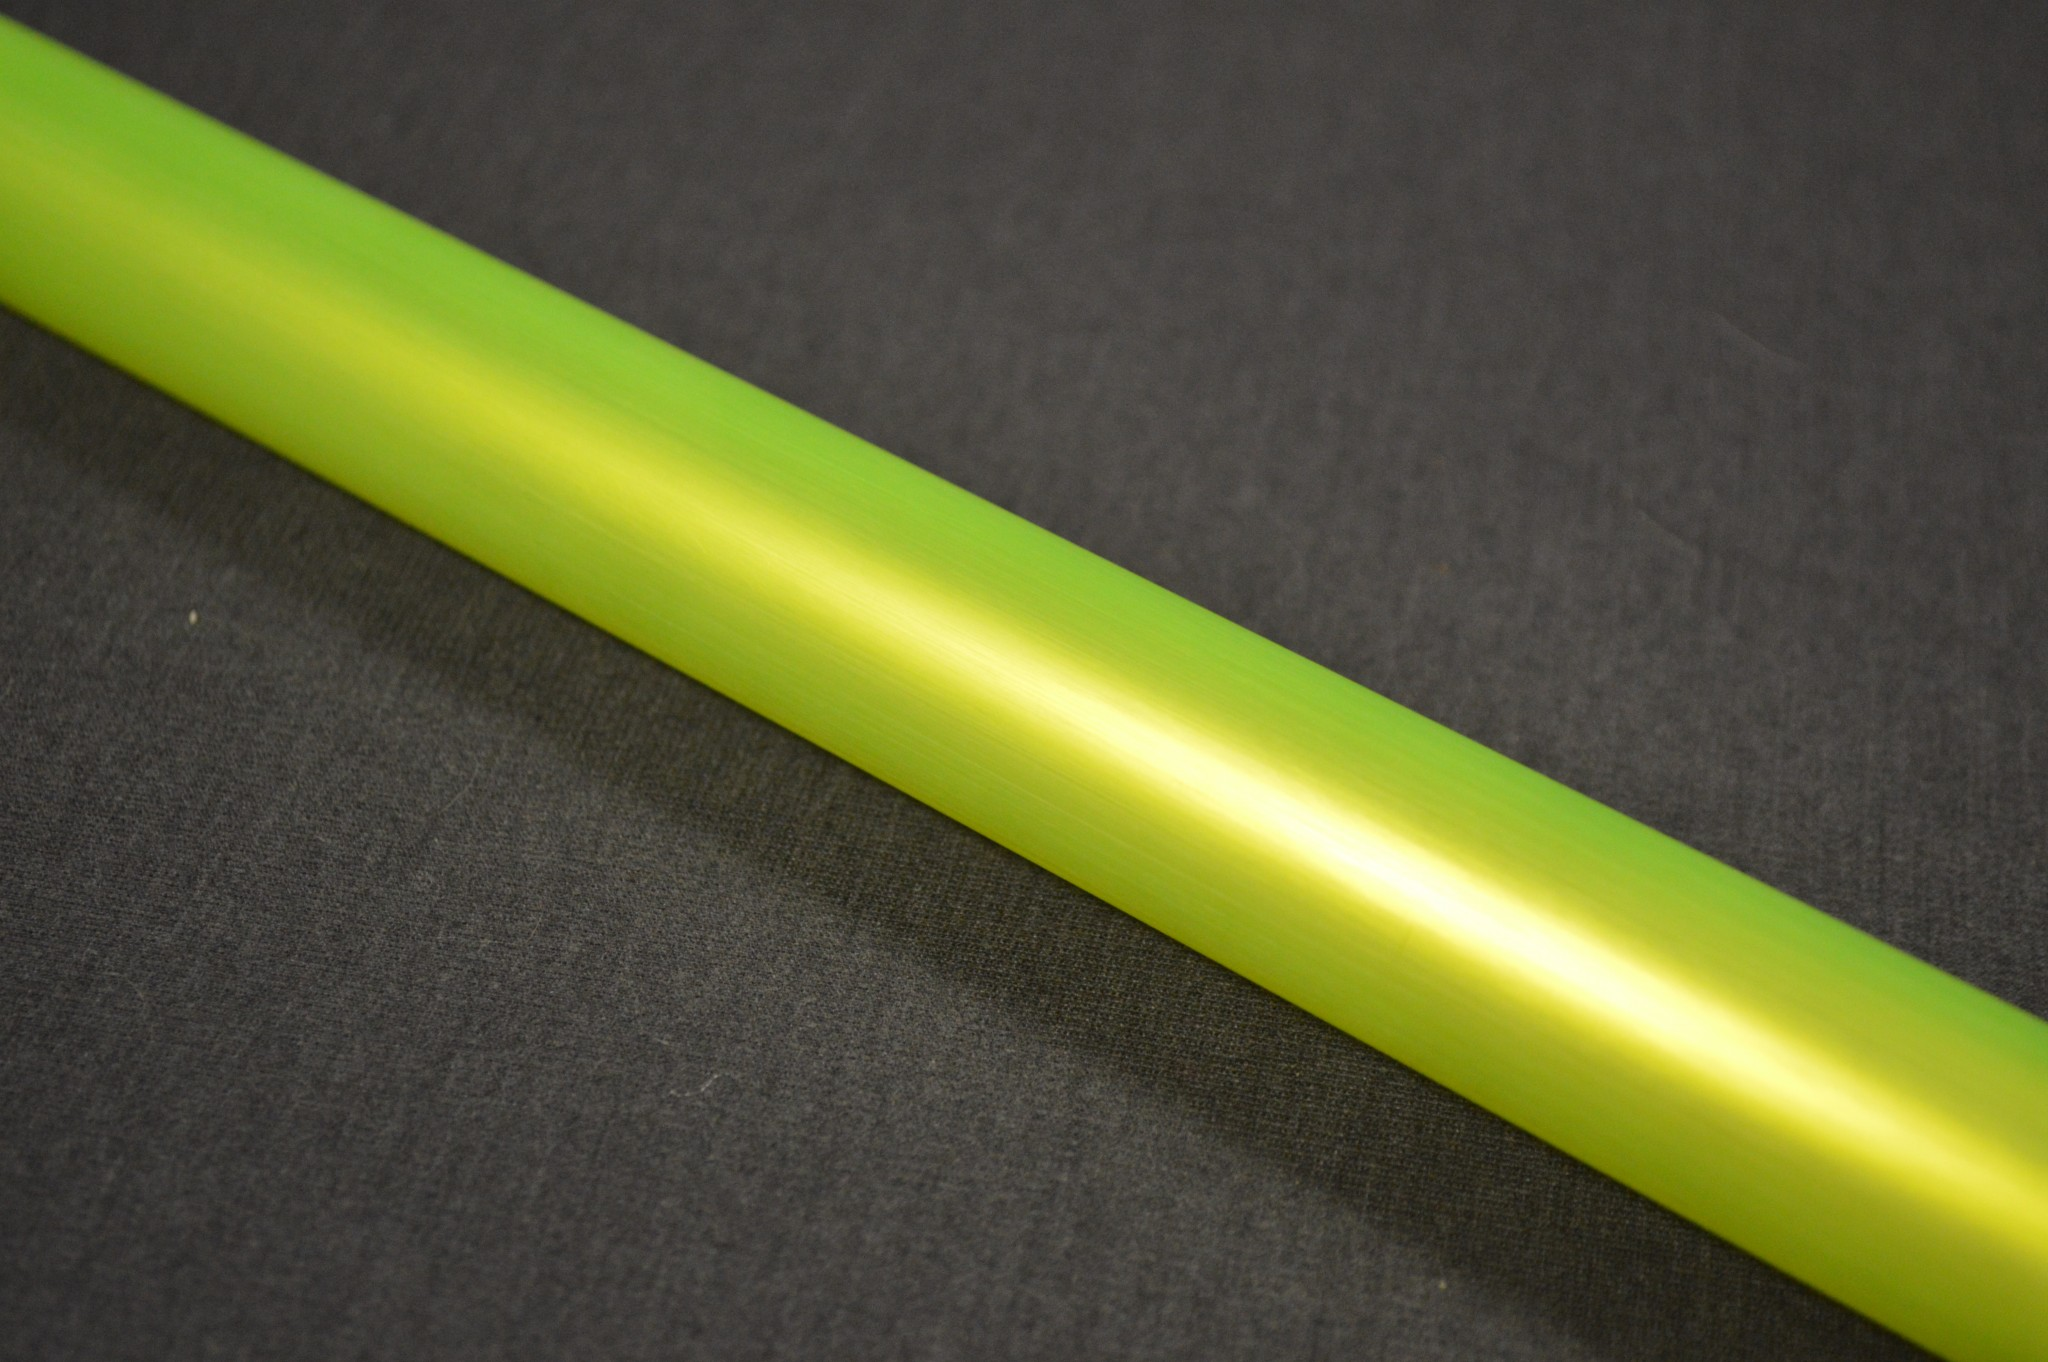 A closer look at the electric yellow Photon Blade